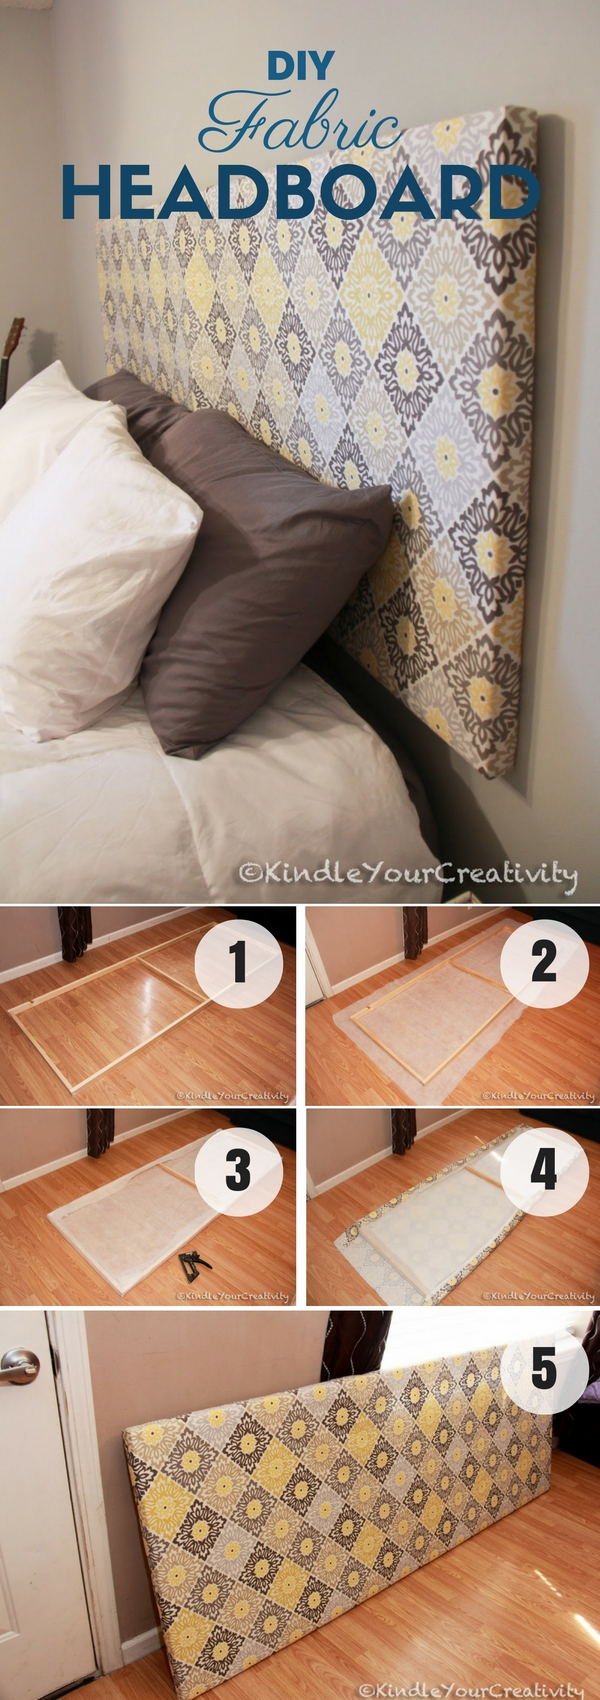 12 Aesthetic Headboards for Your Bedroom: DIY Fabric ...